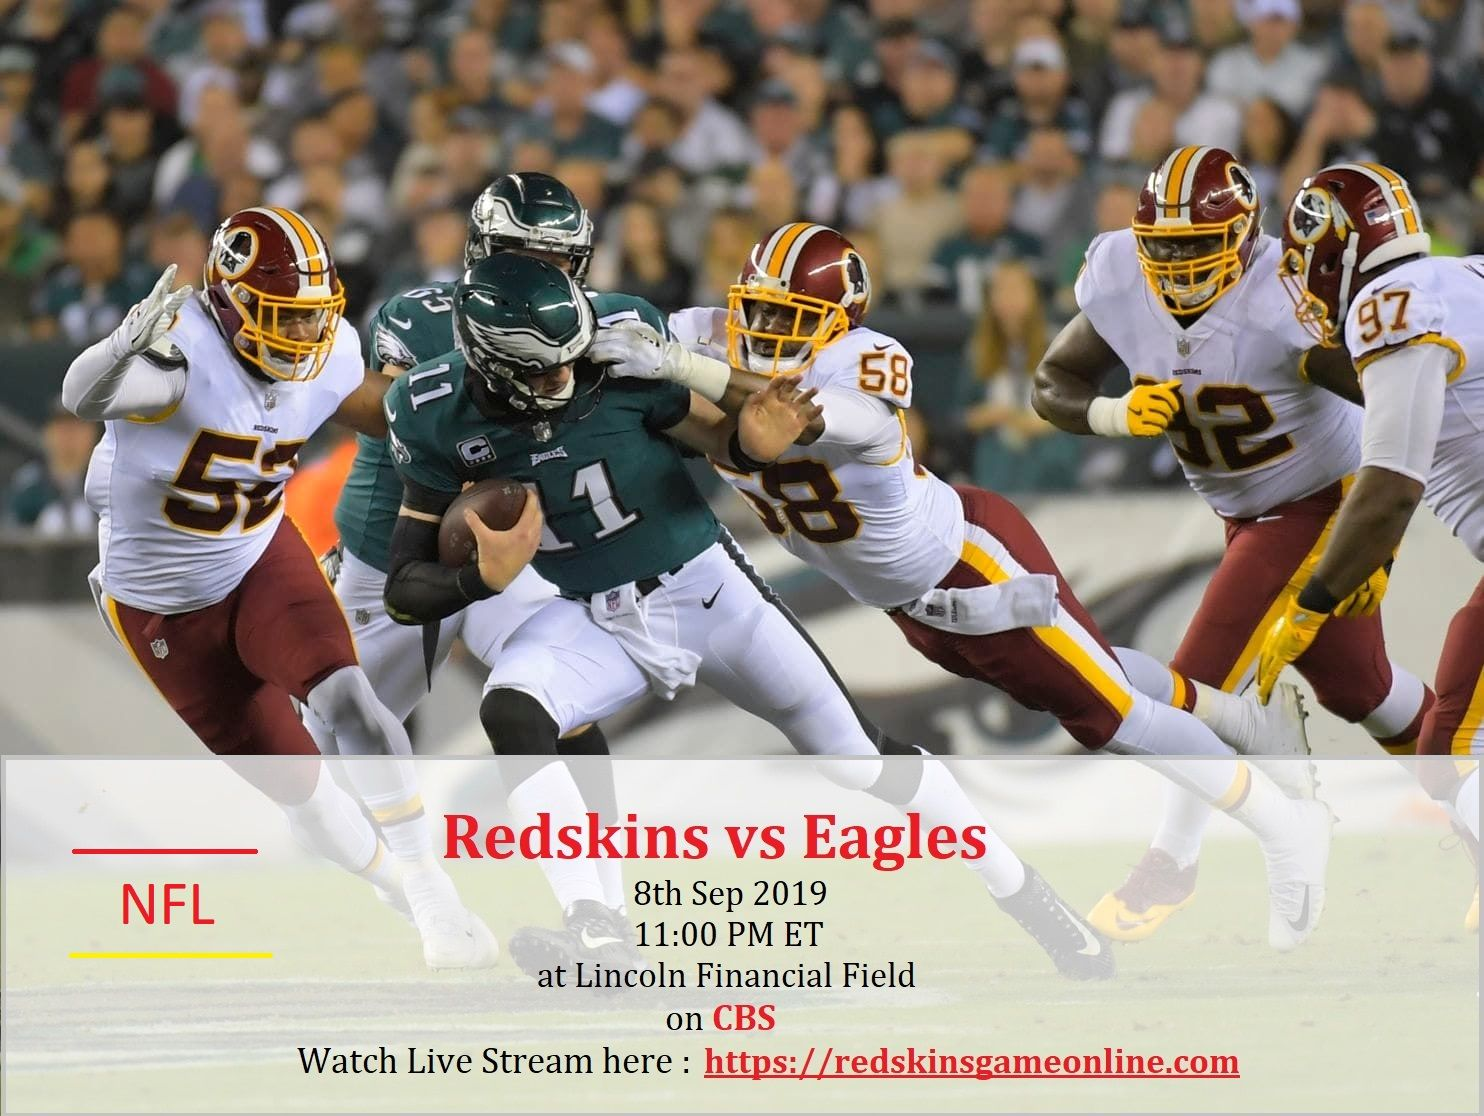 Pin on Redskins vs Eagles live stream NFL